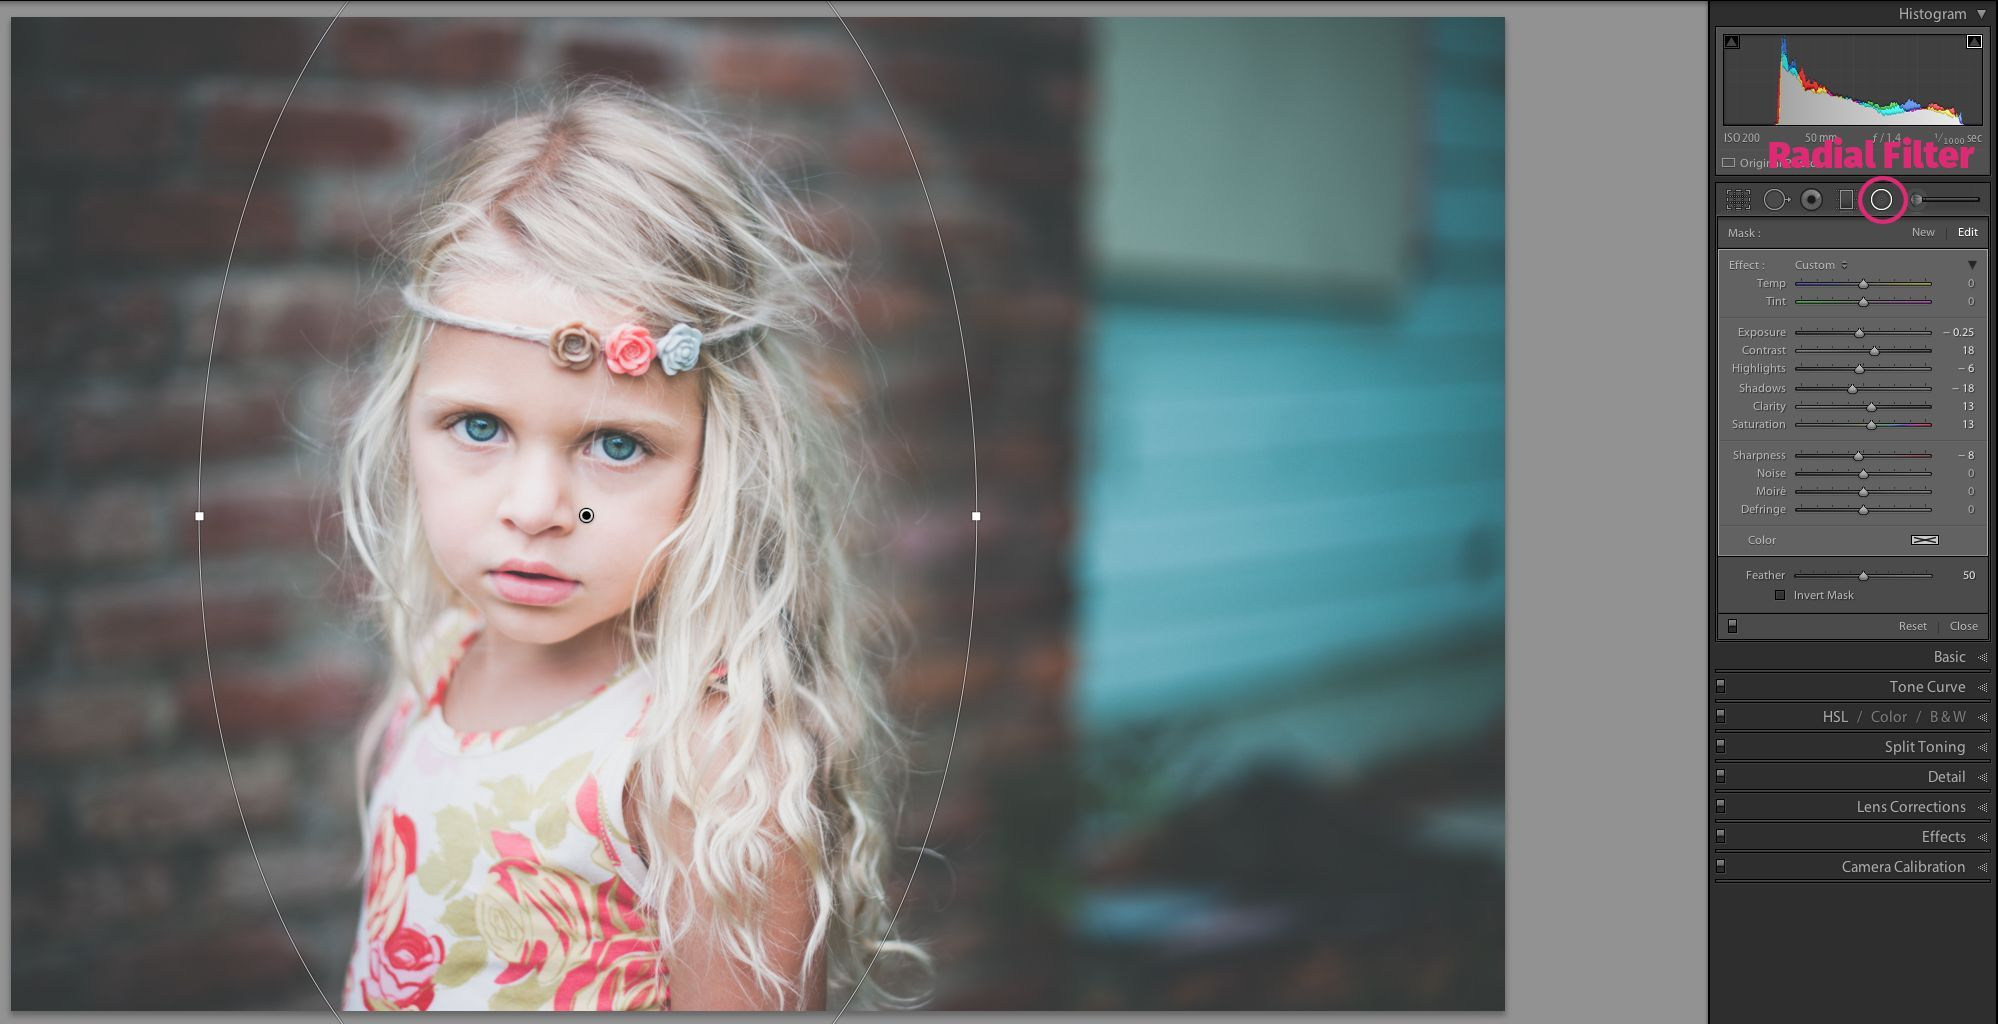 Lightroom in 7 Days: Developing Your Photos Mastering Lightroom in 7 Days: Developing Your Photos | Pretty Presets for LightroomMastering Lightroom in 7 Days: Developing Your Photos | Pretty Presets for Lightroom